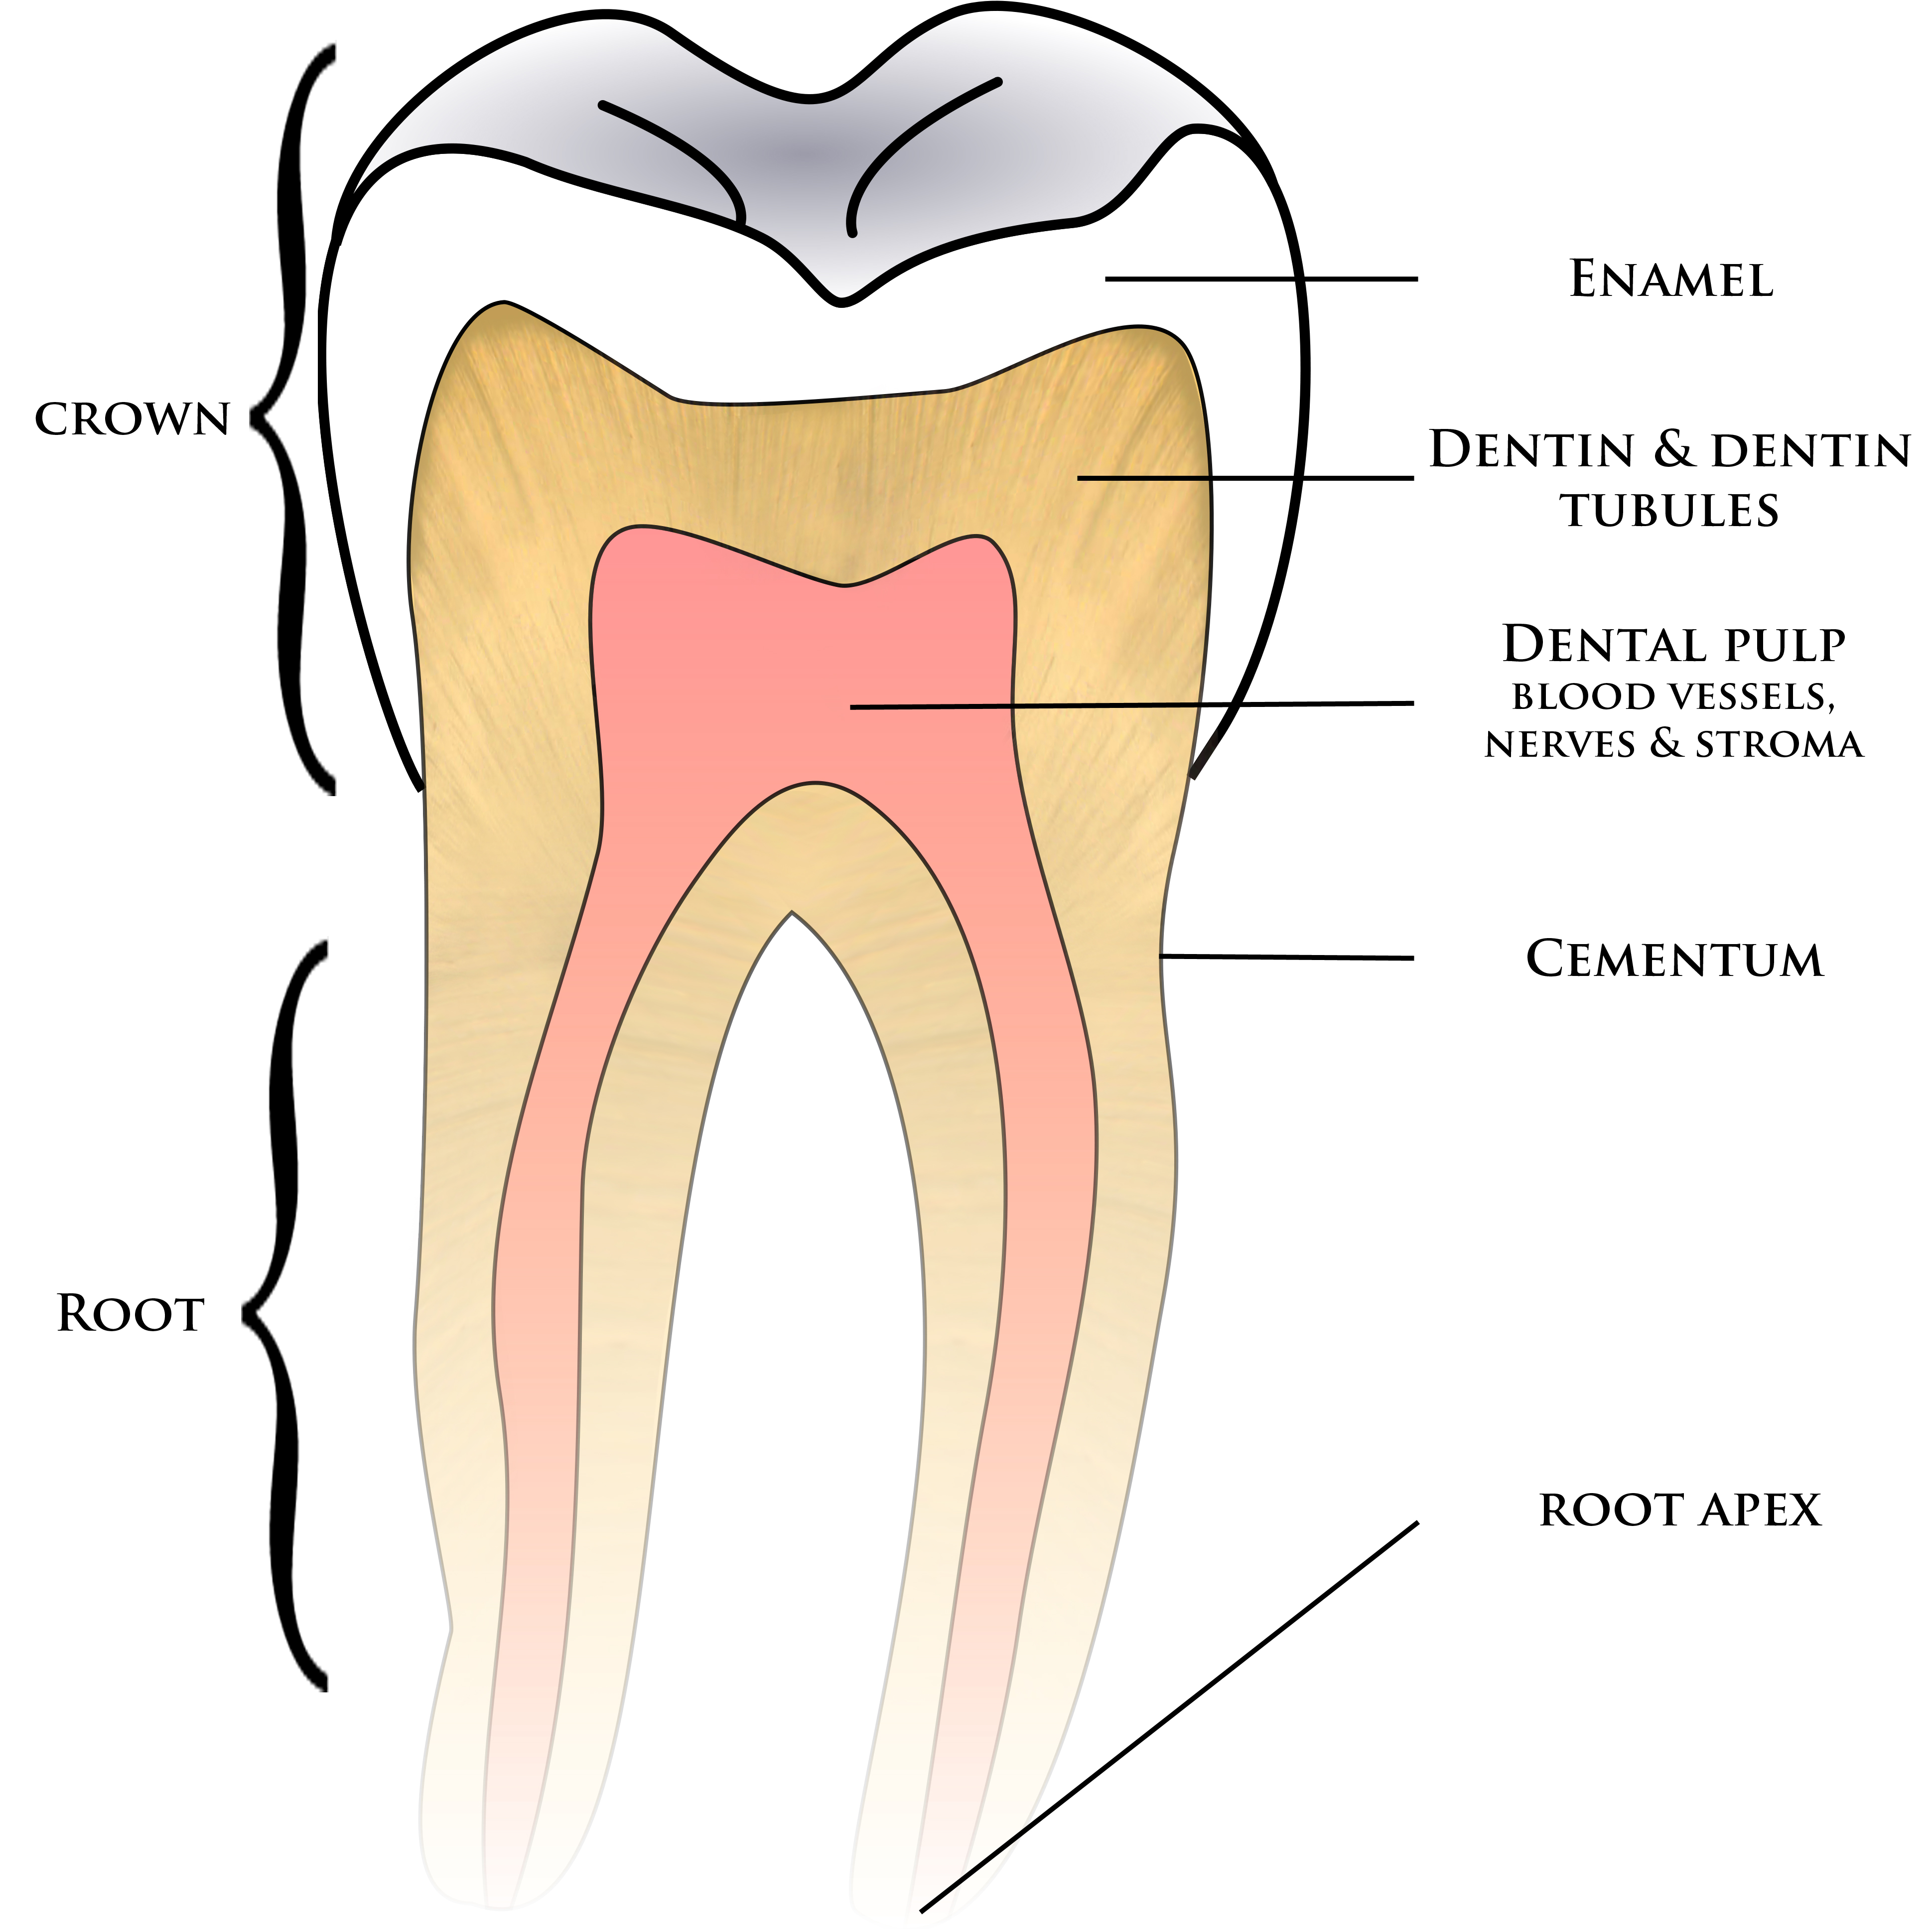 Pearson Tooth Diagram Simple Wiring Diagram Electricity Basics 101